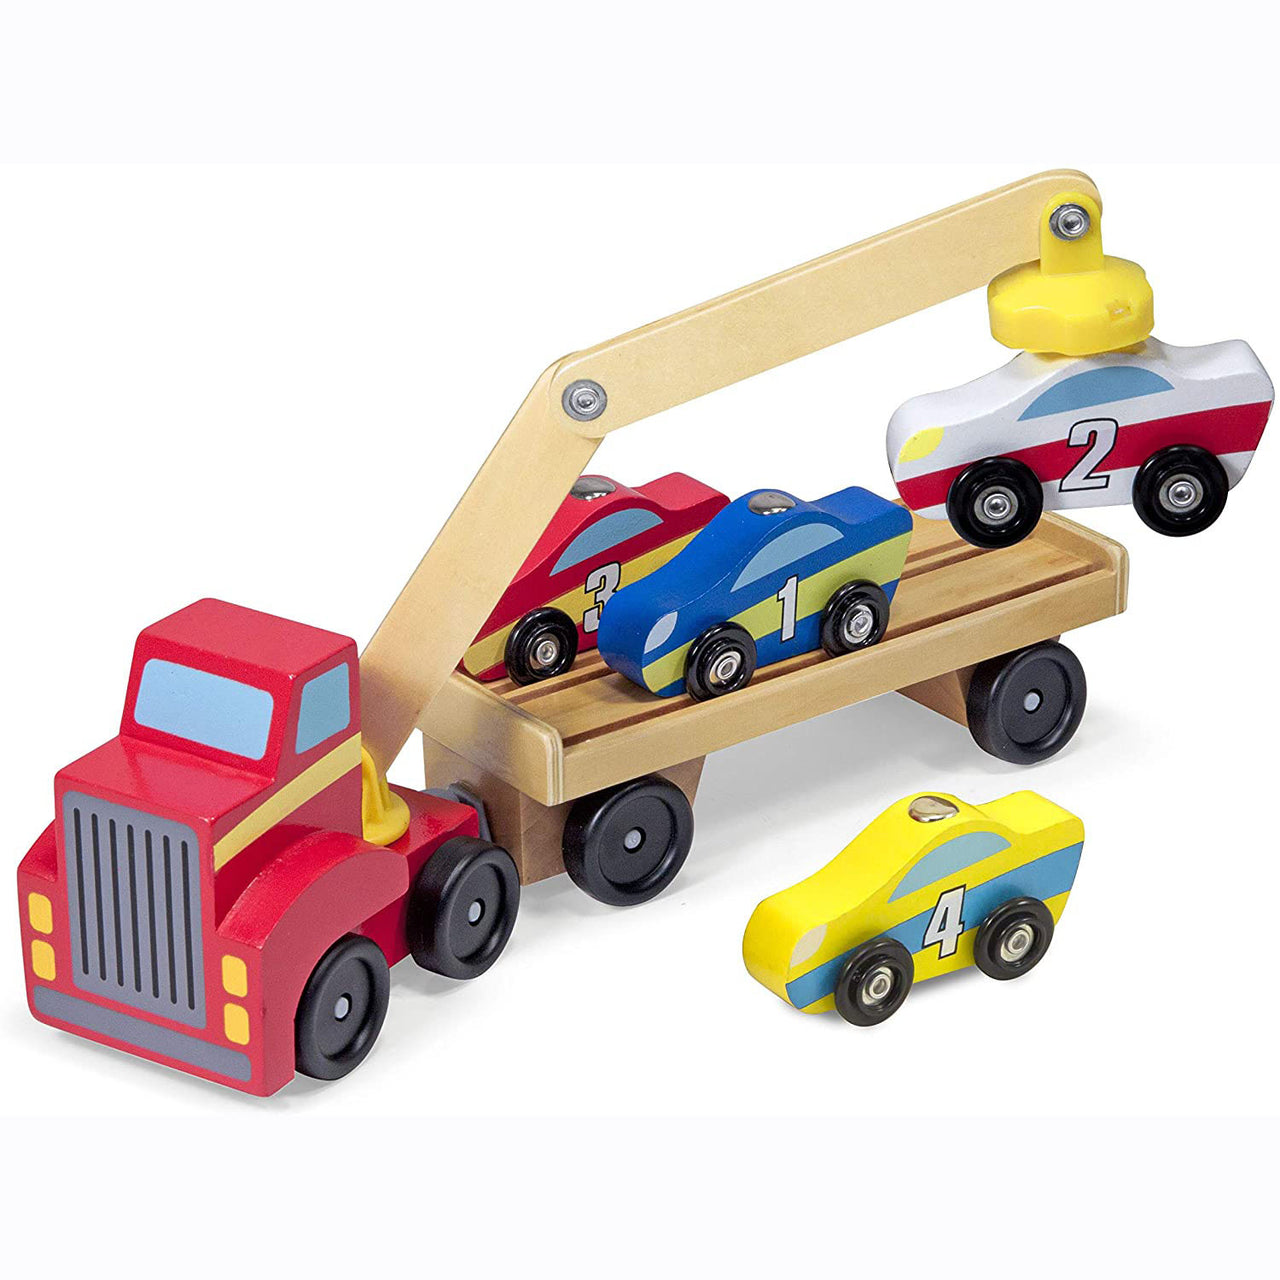 This big red car loading truck has a magnetic arm that can reach every car on its trailer!